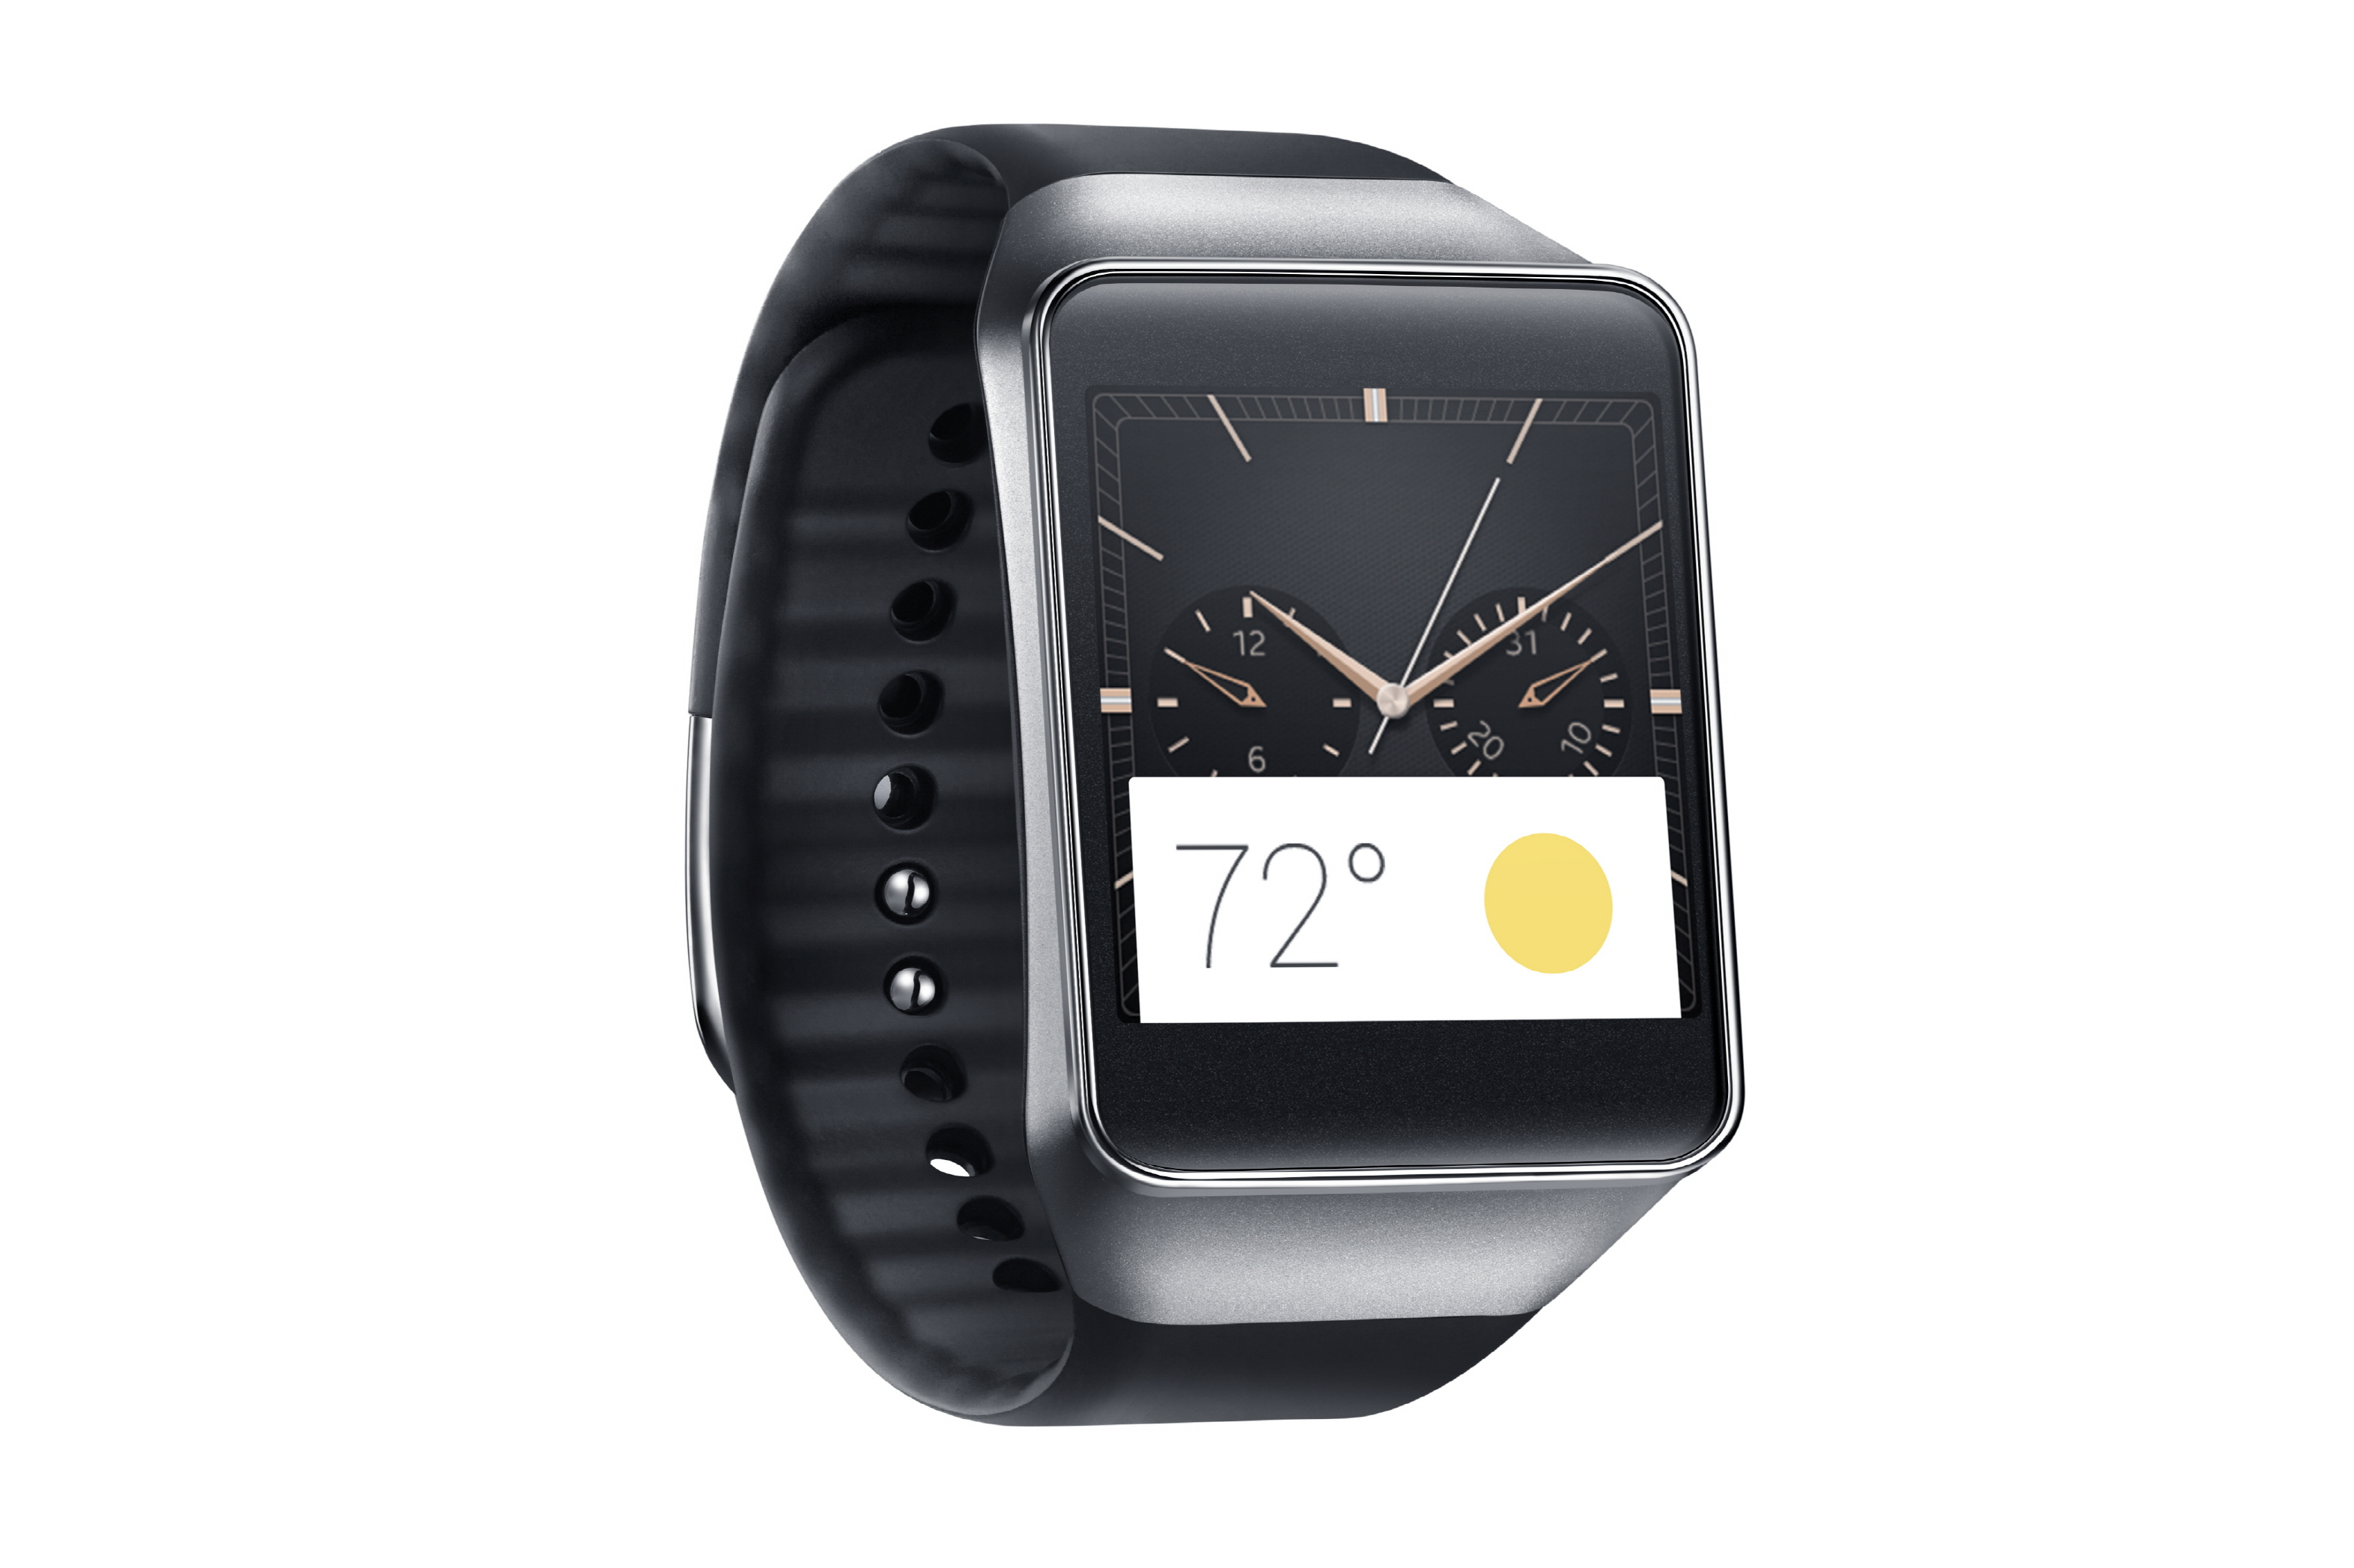 PSA: The Samsung Galaxy Gear Live is now available at Amazon with free shipping